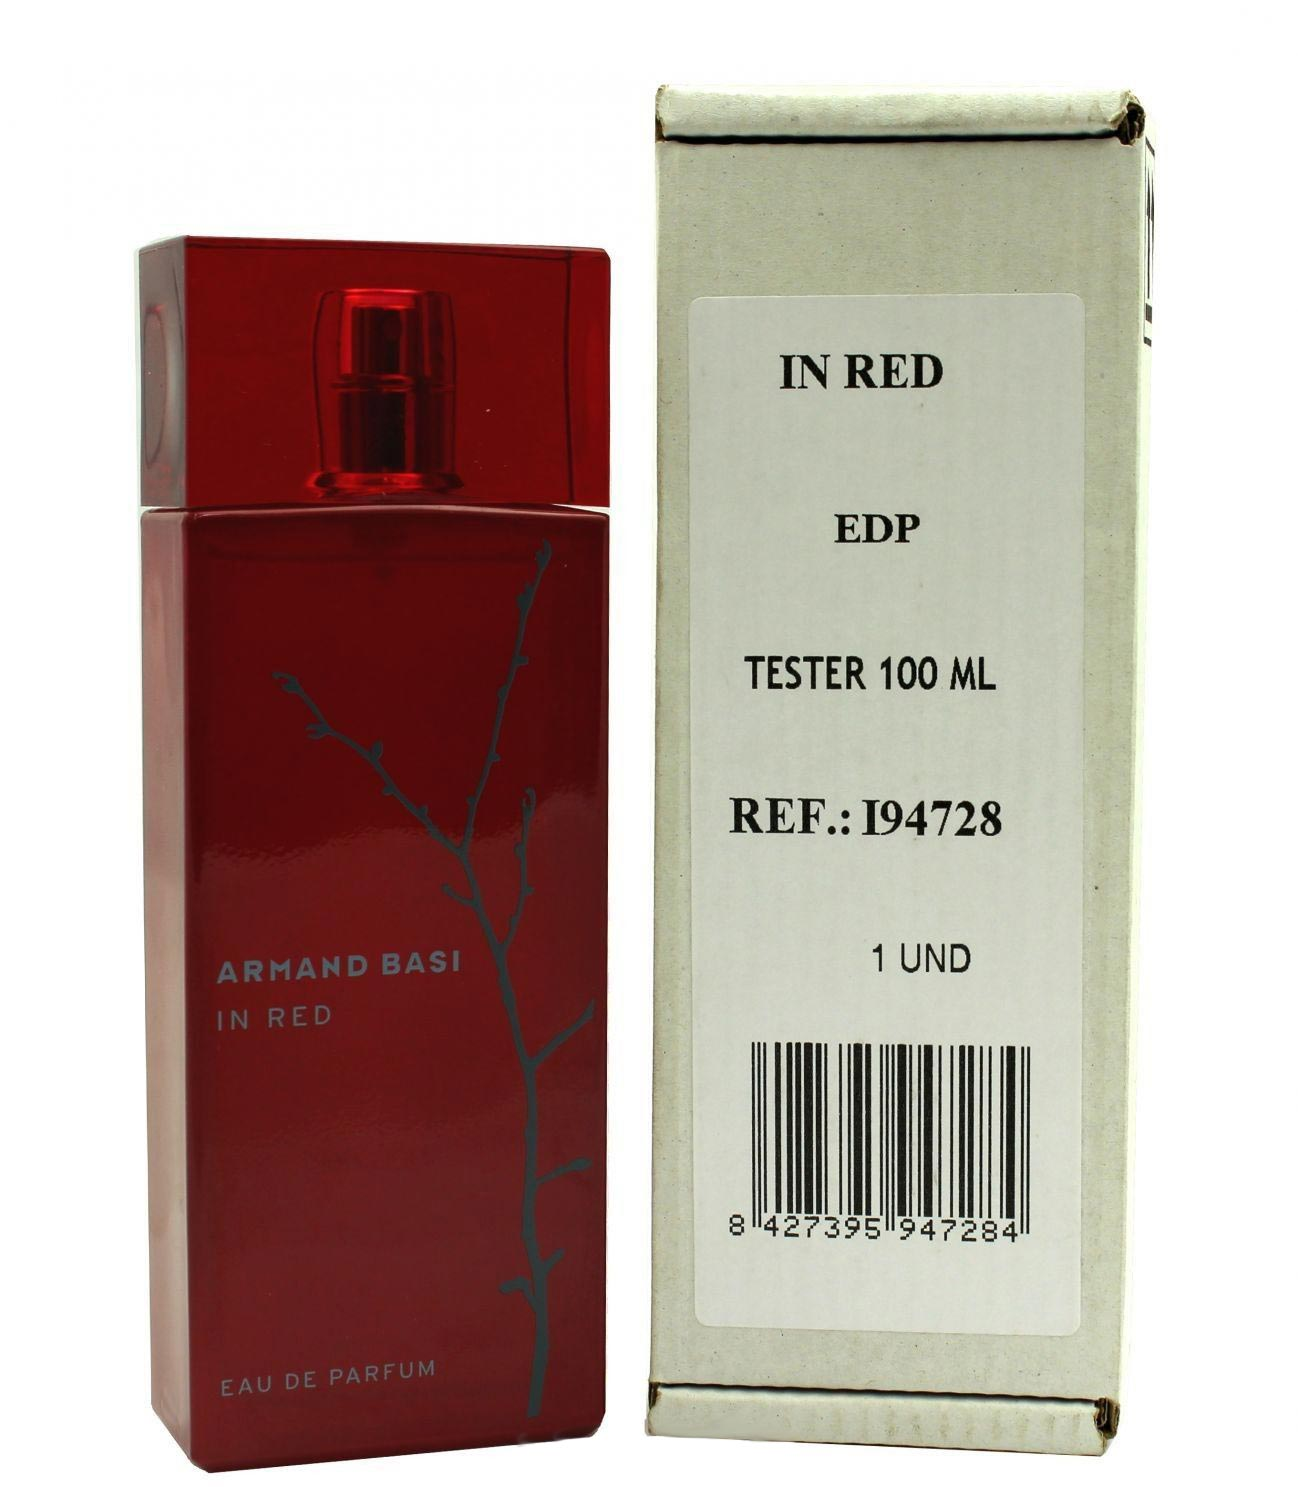 картинка Armand Basi in Red Eau De Parfum Tester Для Женщин 100 ml от магазина Авуар